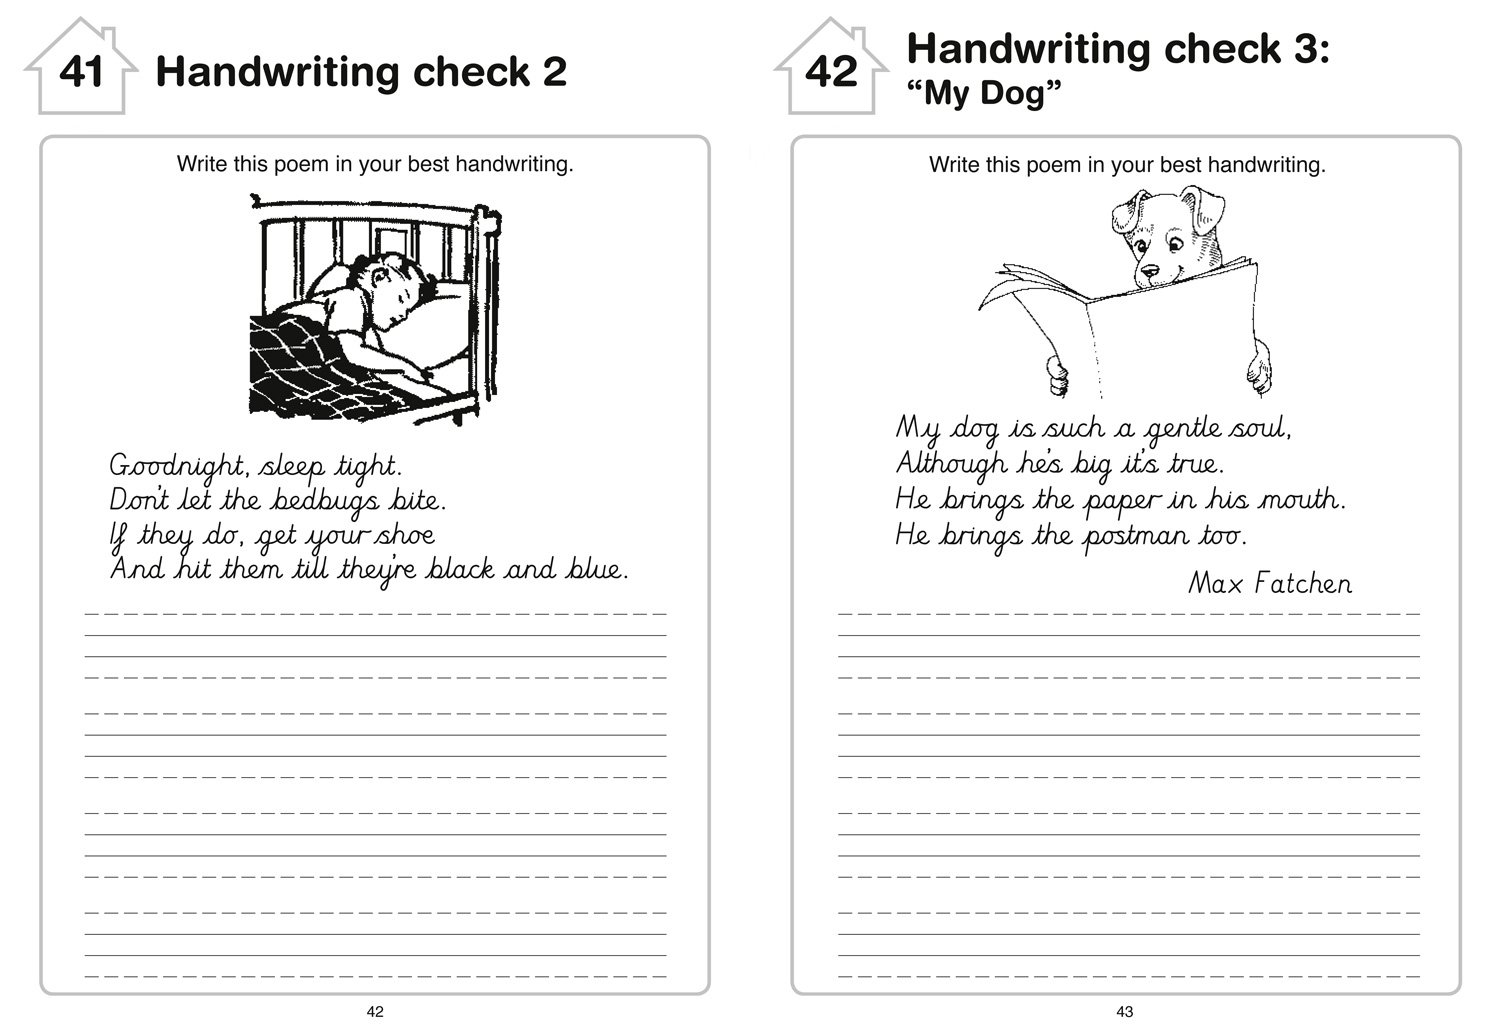 Handwriting Workbook 2 (Treasure House): Amazon.co.uk: TREASURE ...